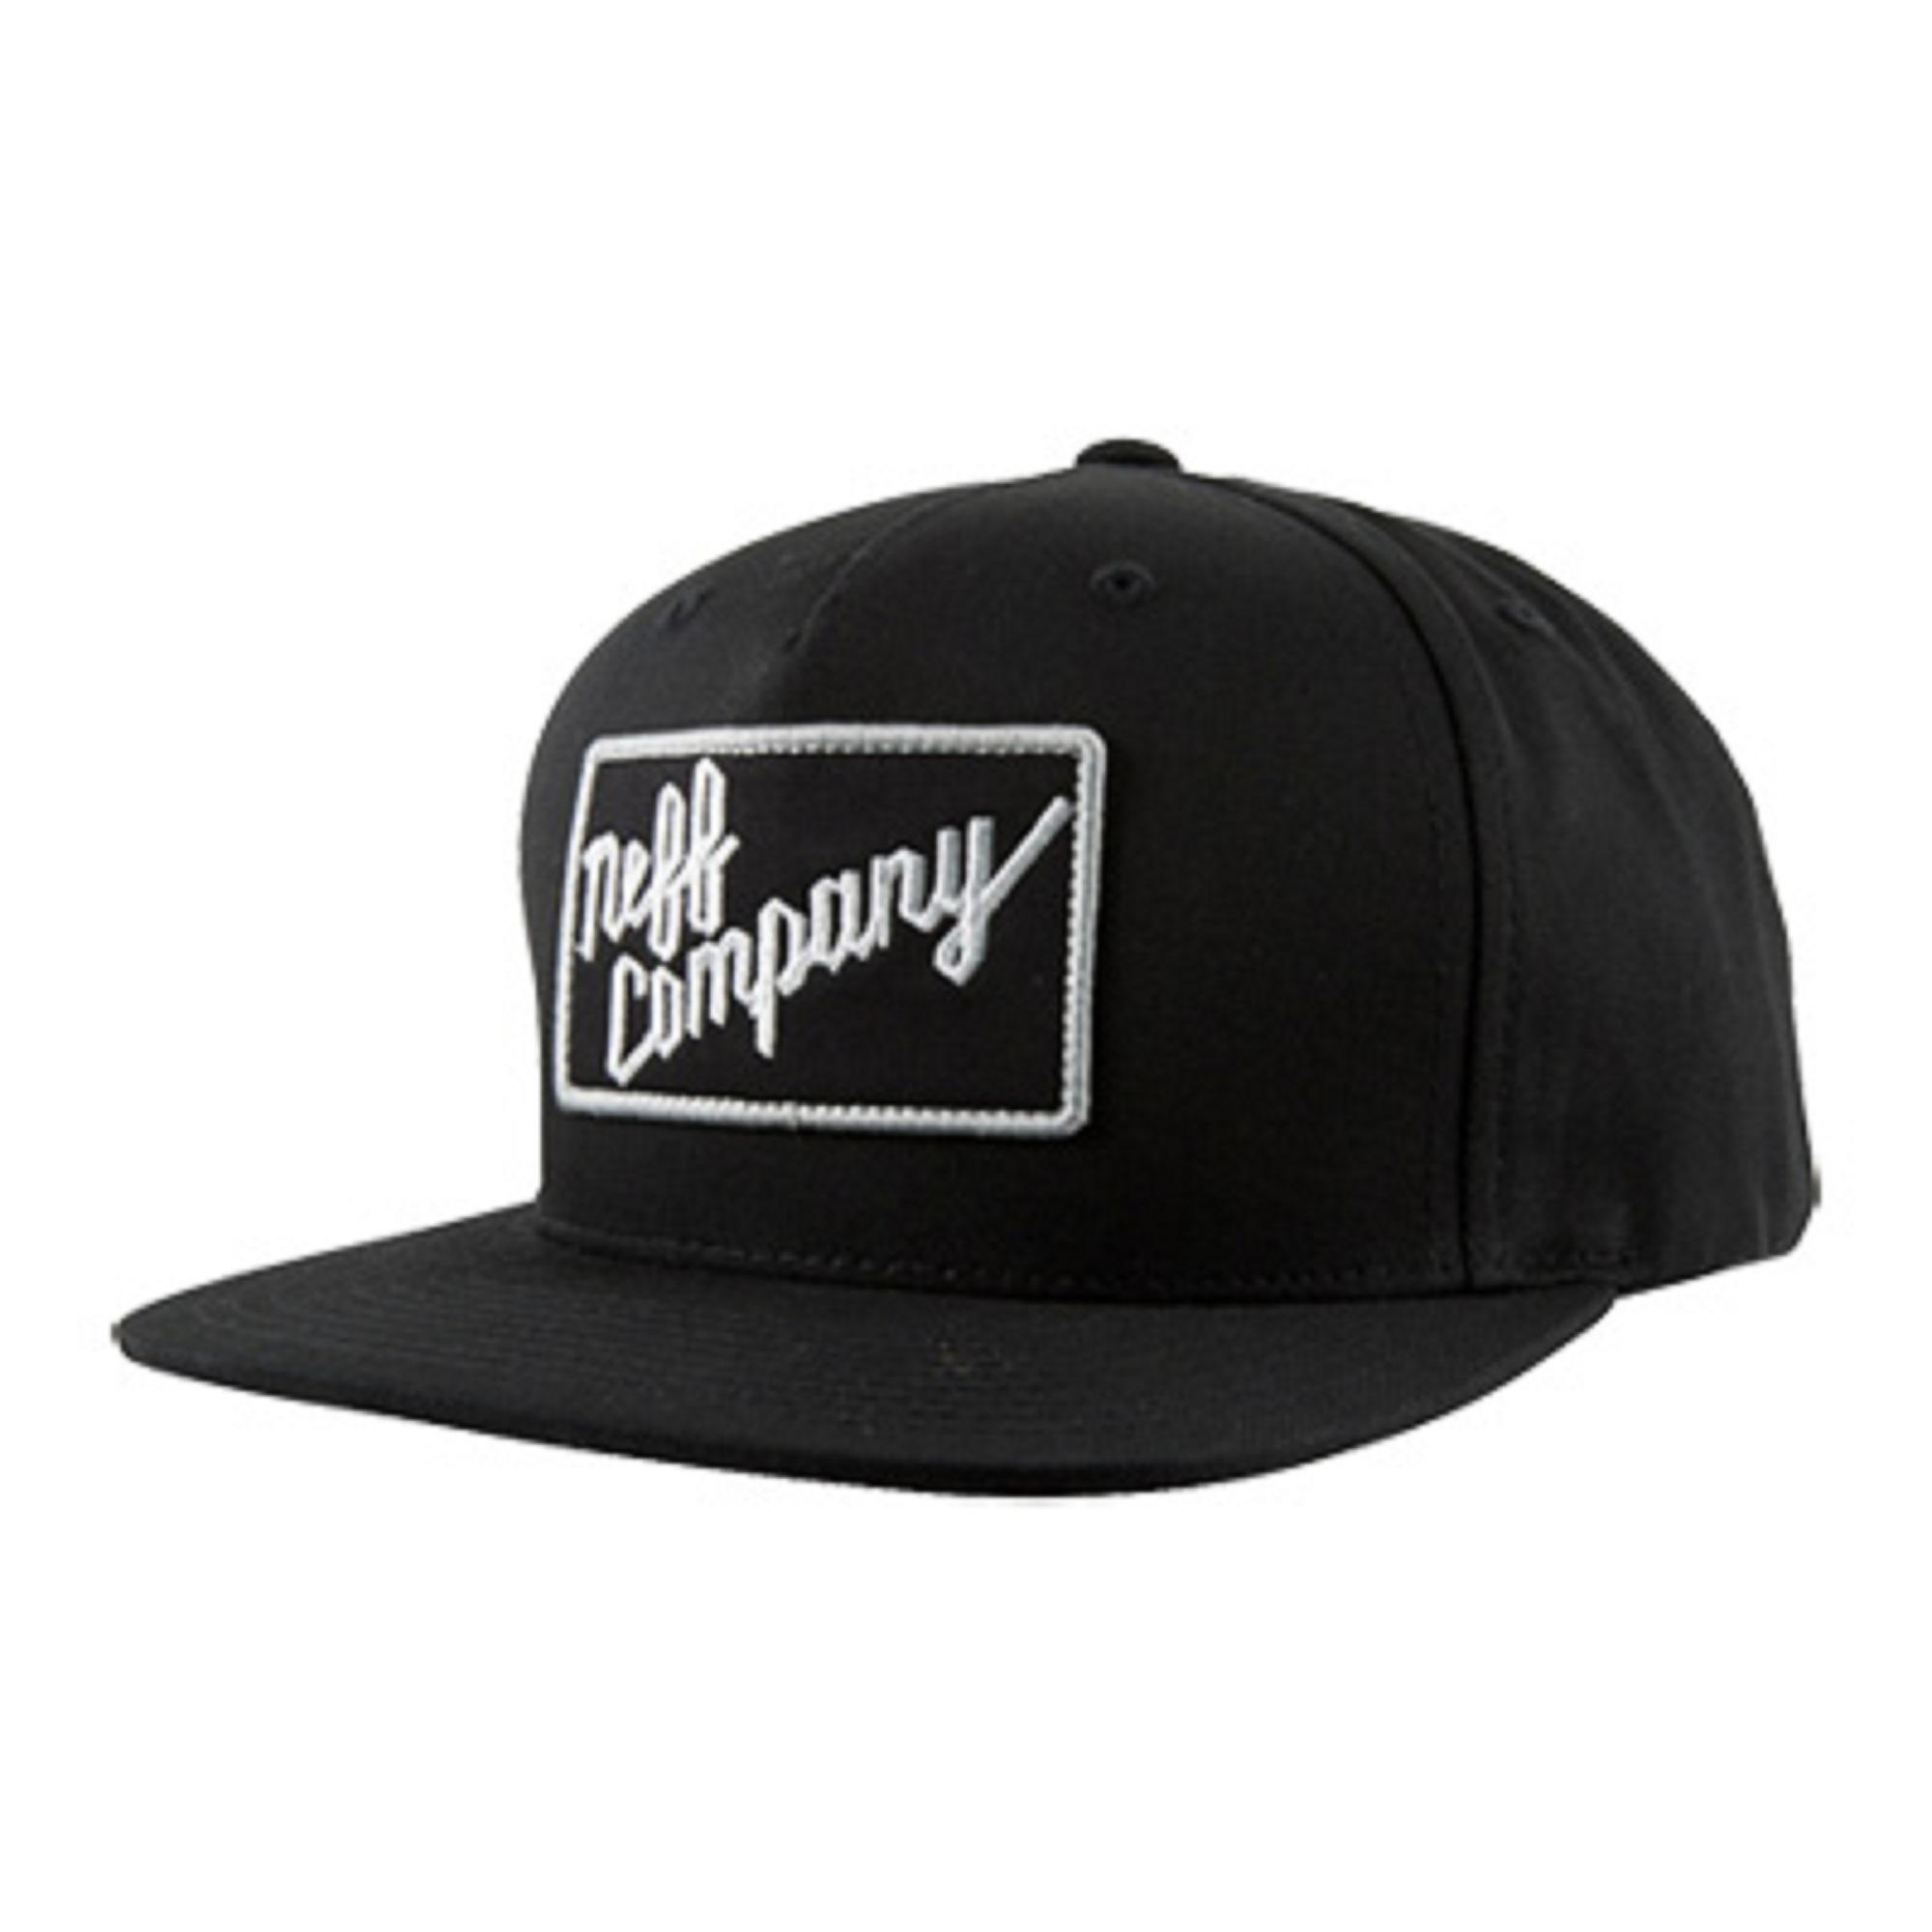 2d74cdef5 Hats for Men for sale - Mens Hats Online Deals & Prices in ...